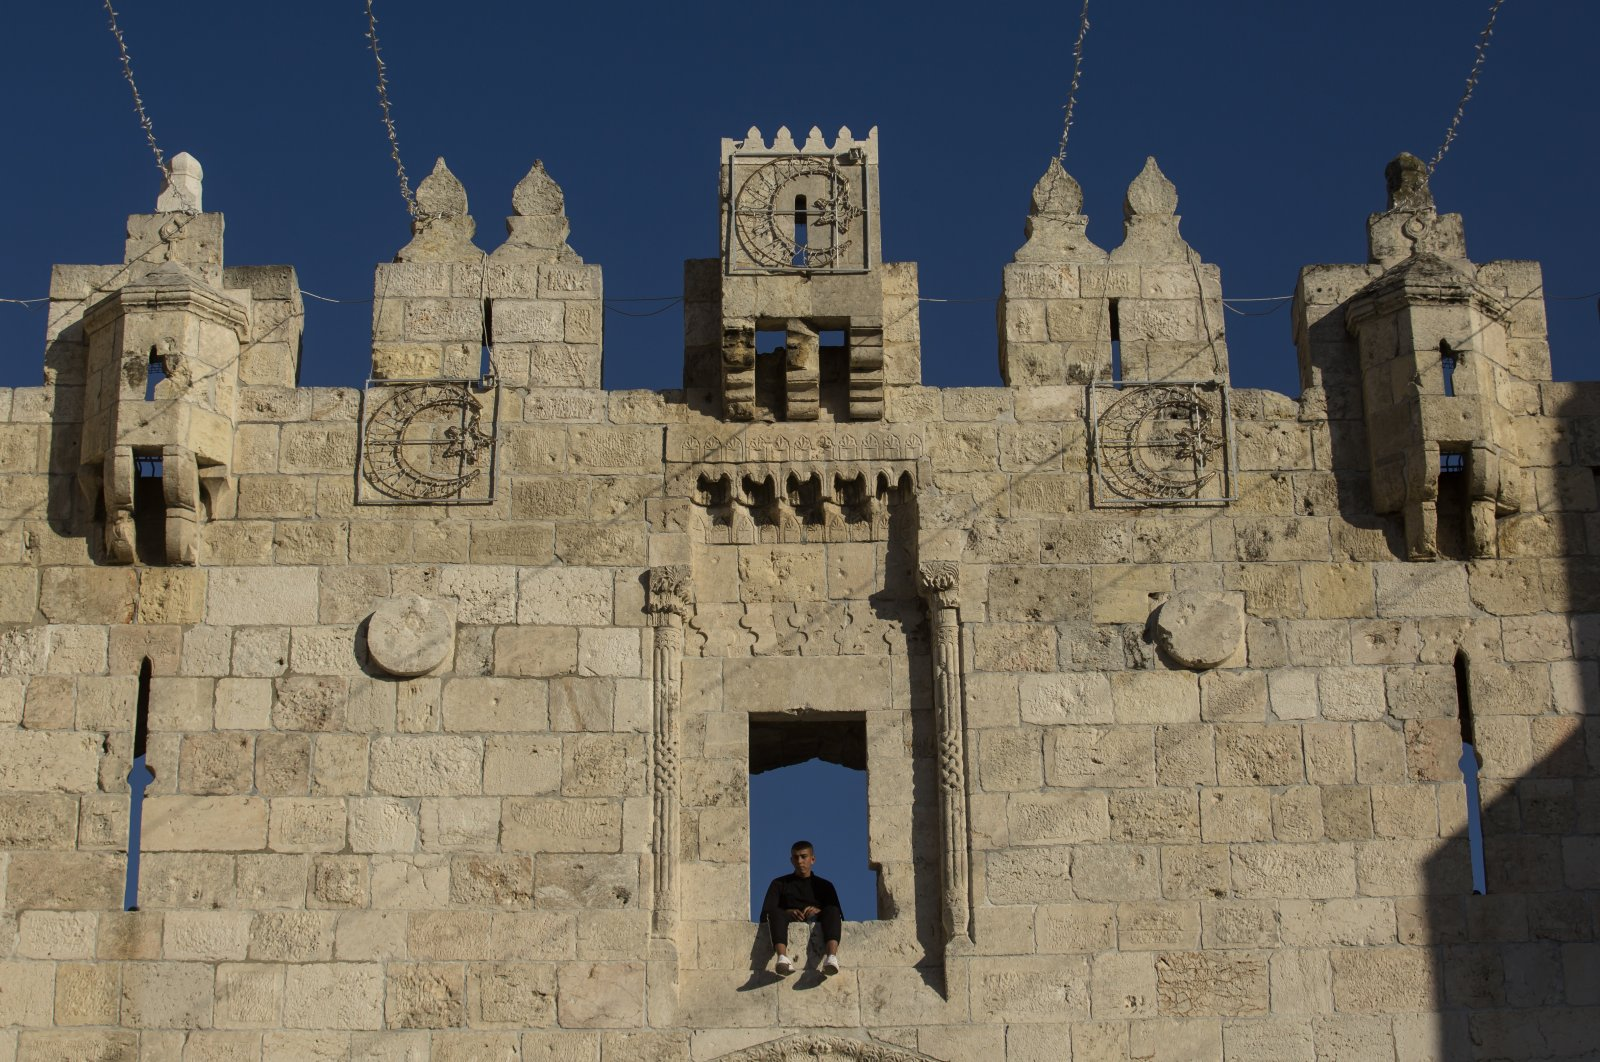 Israeli occupation in East Jerusalem knows no limits | Opinion